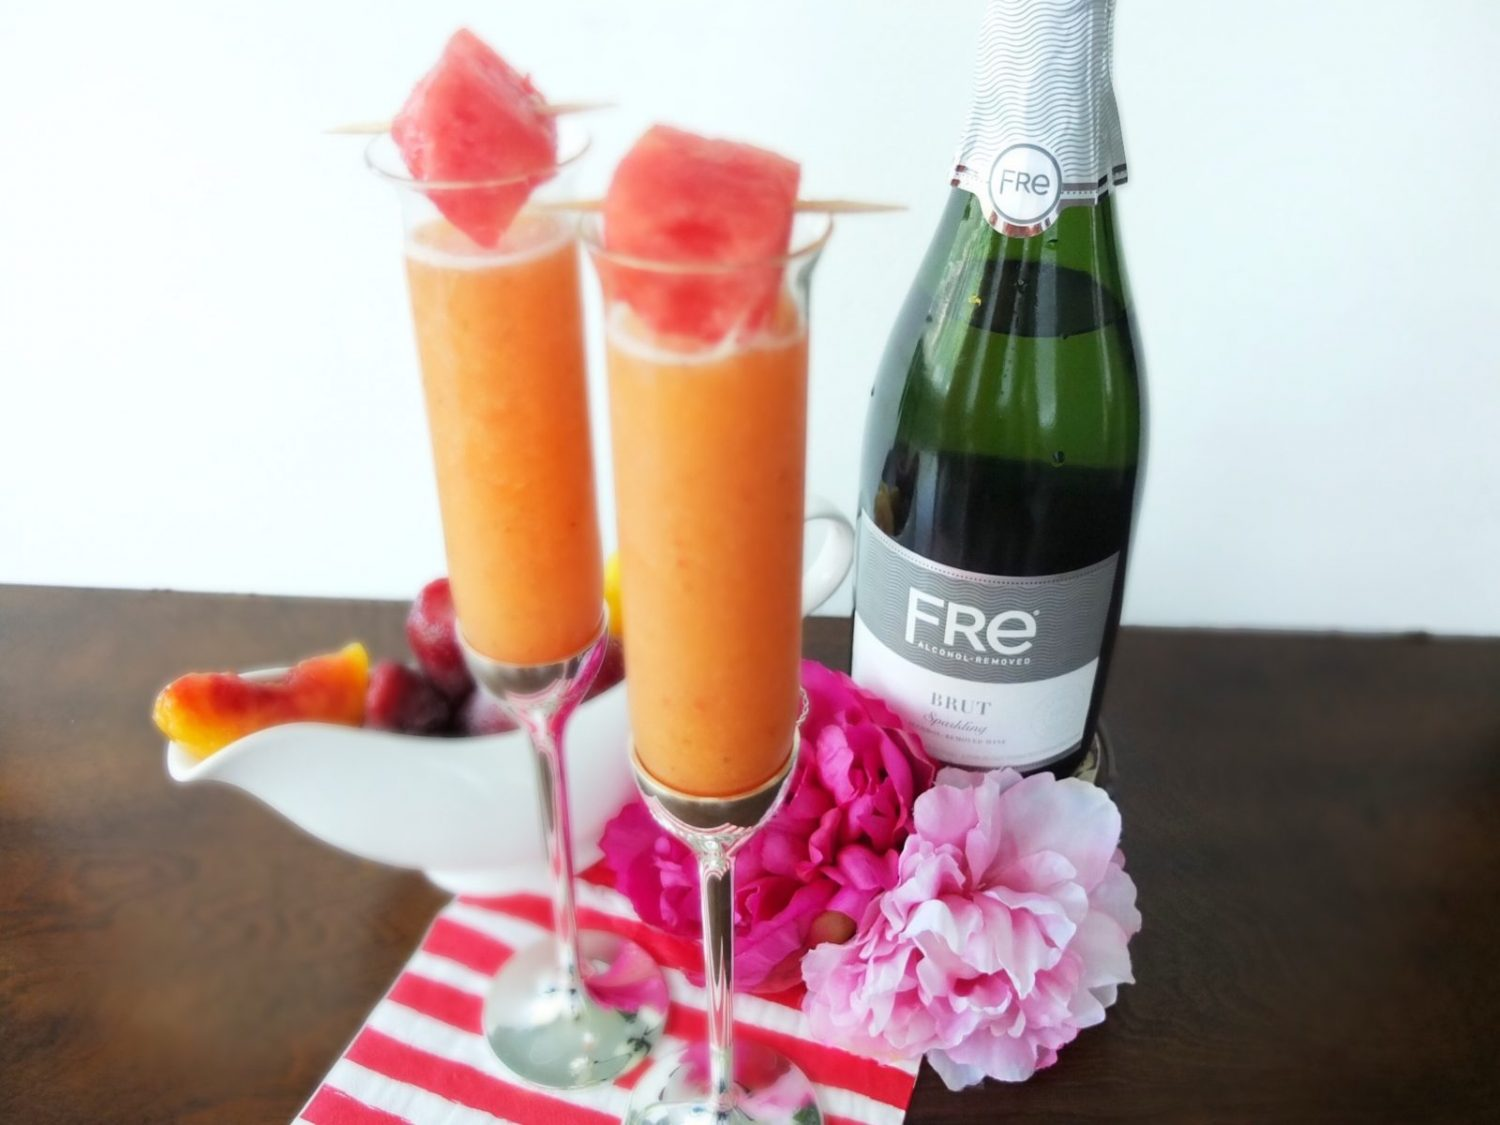 Msg 4 21+The perfect baby shower cocktail! This Babe-lini Mocktail is a fun spin on a Bellini, but since it